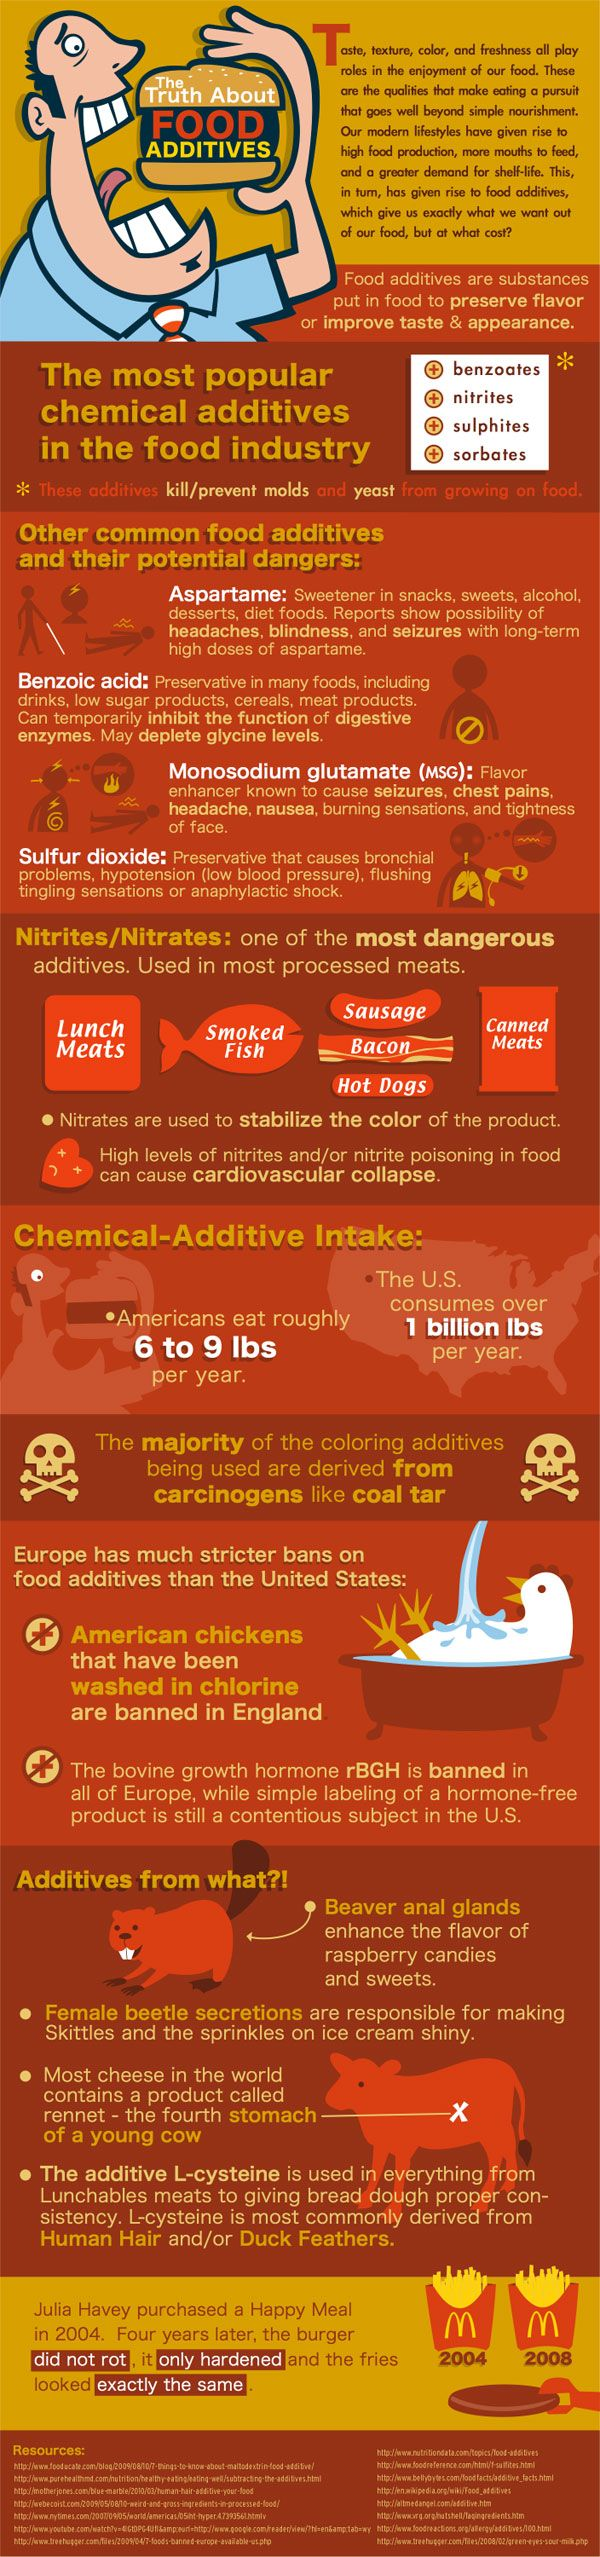 Food additives infographic